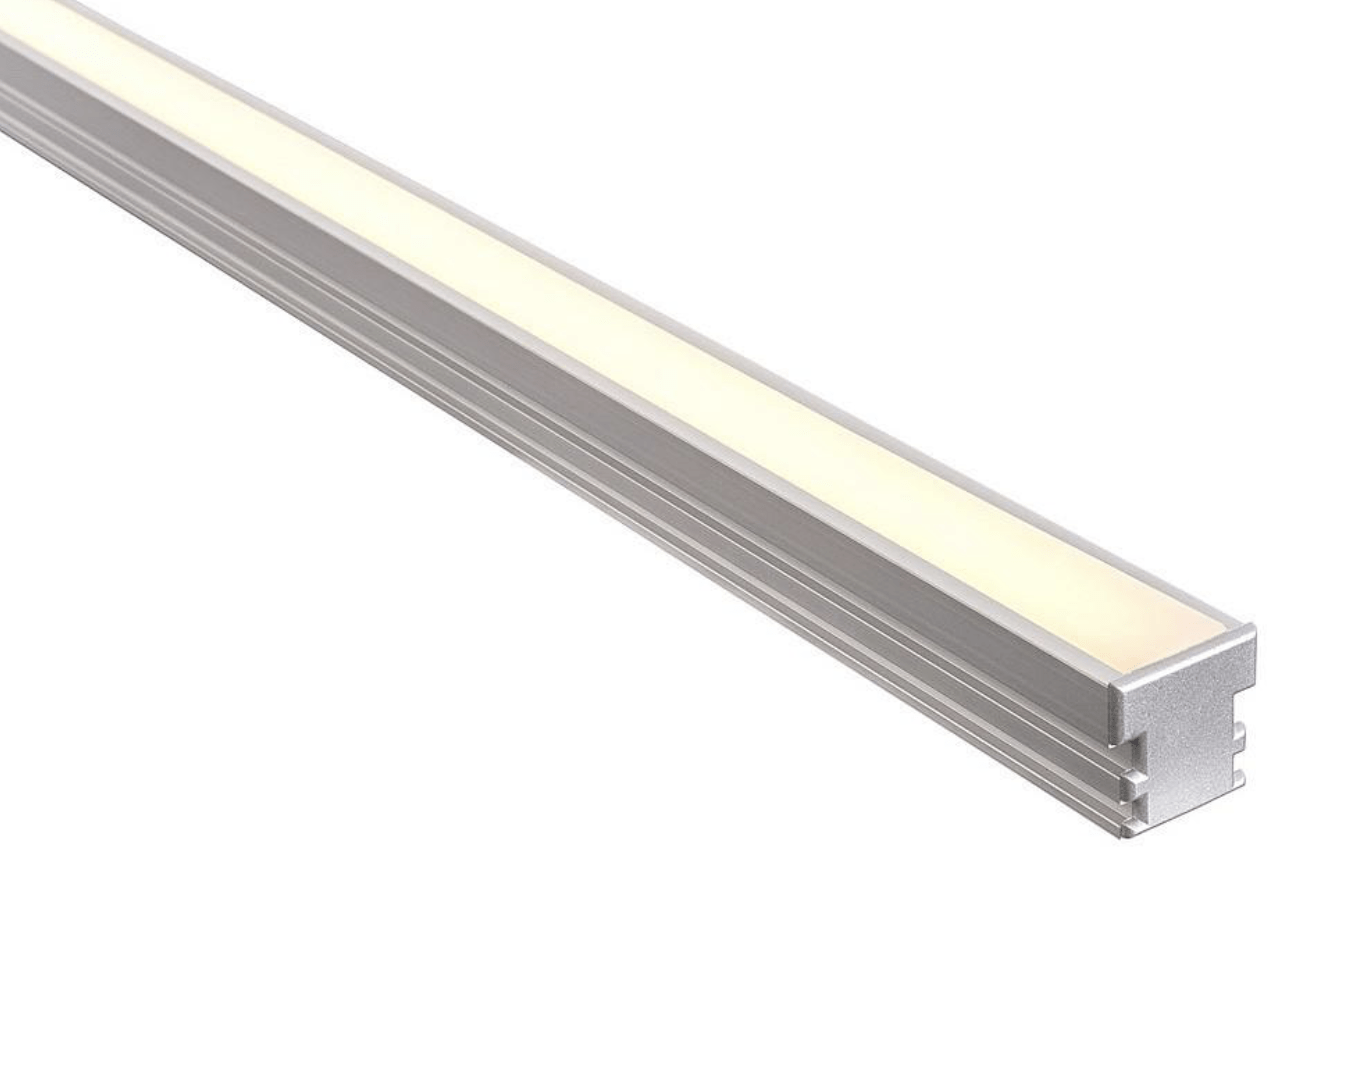 Profiles Recessed Profile - Foot Trafficable Deep - HV9698-2626